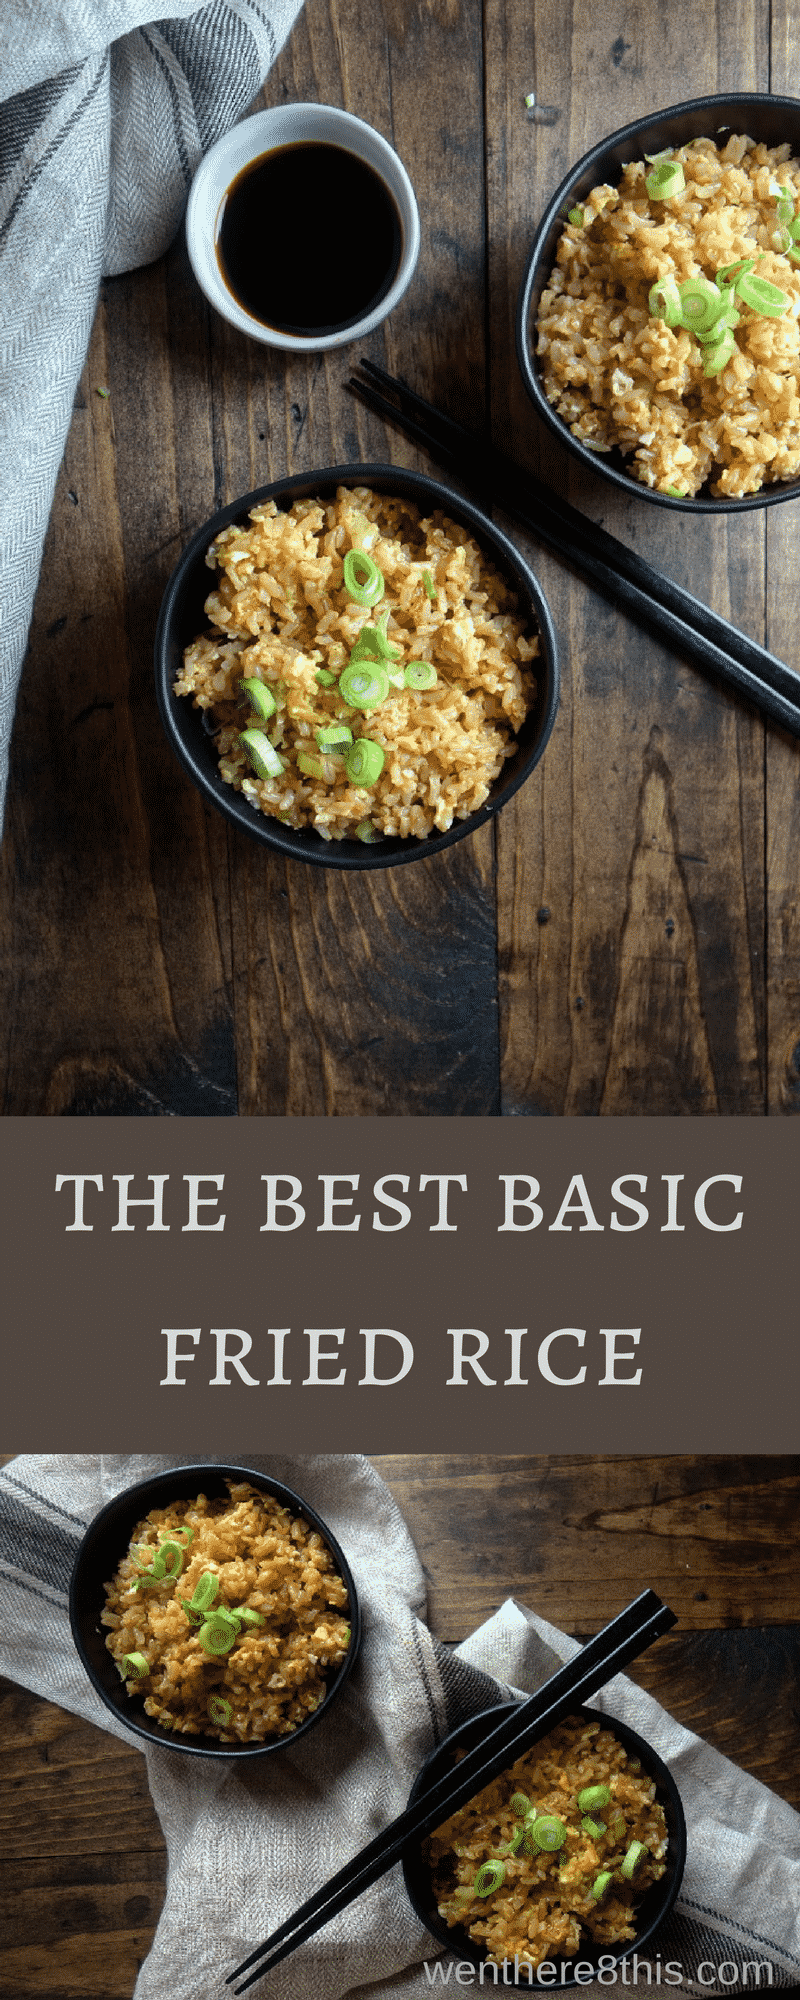 This basic fried rice with Chinese sausage is super easy to make and a perfect staple for all those homemade takeout Chinese dishes!easy fried rice recipe | the best fried rice recipe | 10 minute fried rice | chinese fried rice | fried rice with egg | chinese sausage | better than takeout fried rice | best ever fried rice | easy rice recipes | Chinese takeout recipes | easy chinese fried rice